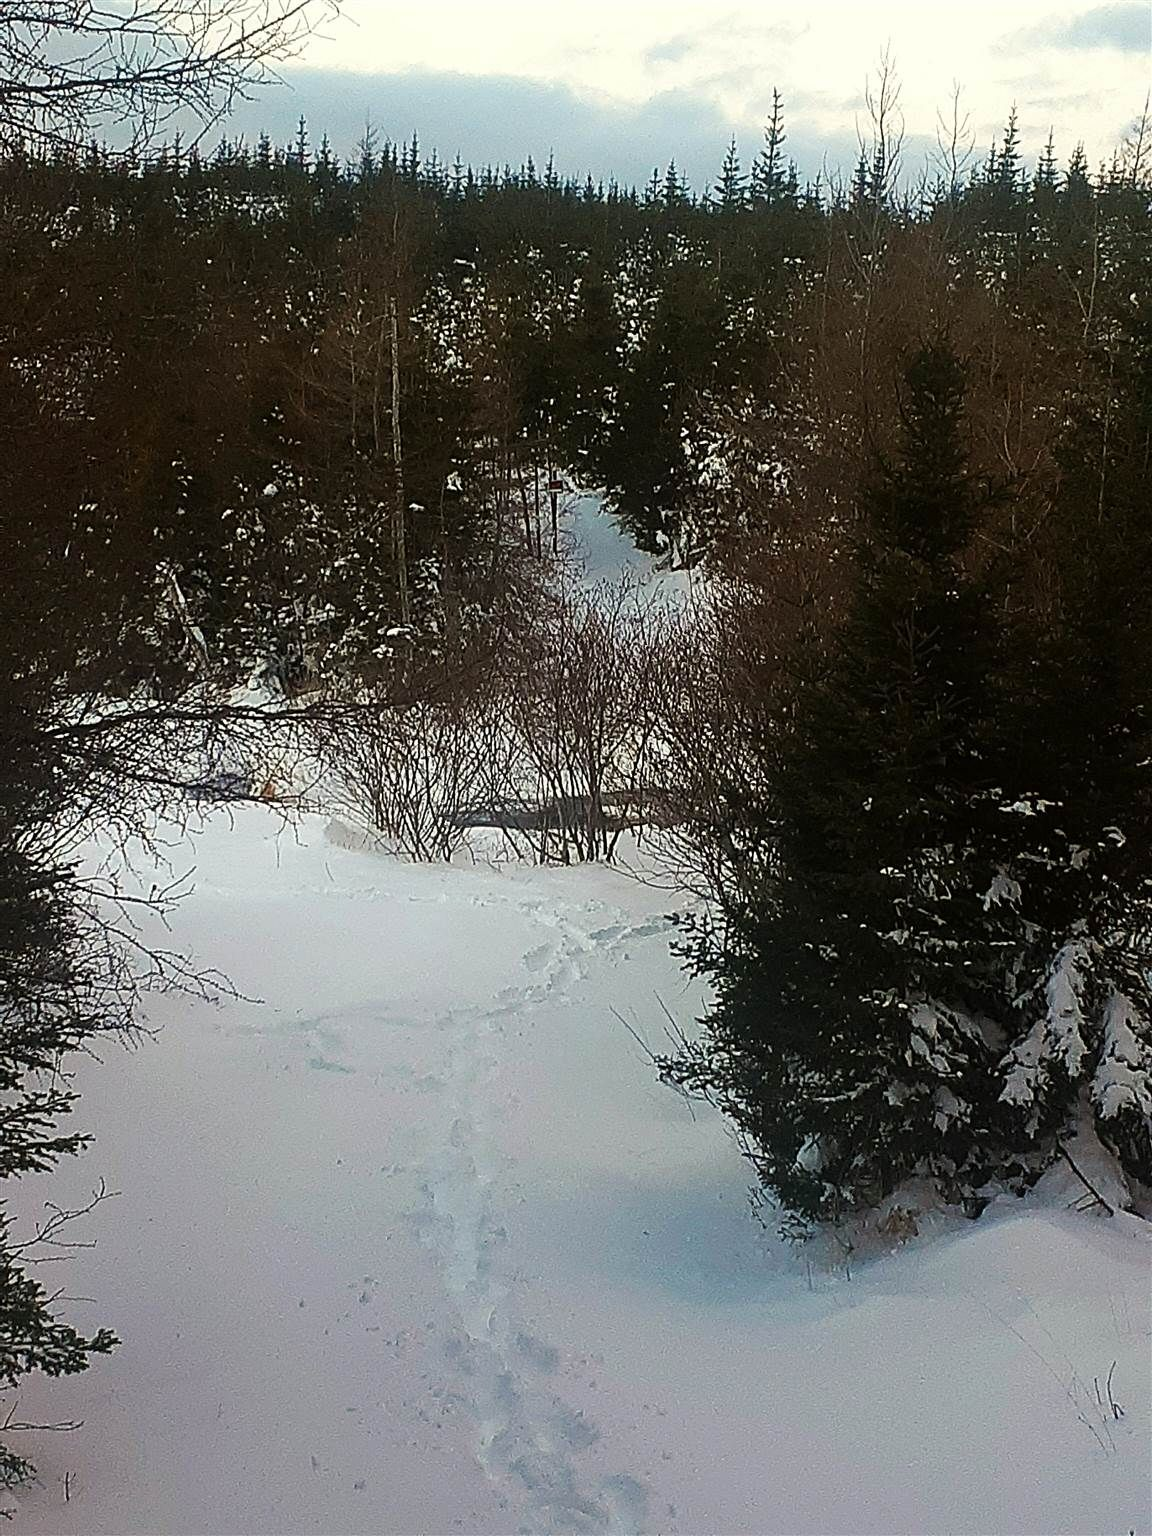 Main Photo: 0 Louisbourg Highway in Louisbourg: 207-C. B. County Vacant Land for sale (Cape Breton)  : MLS®# 202102405